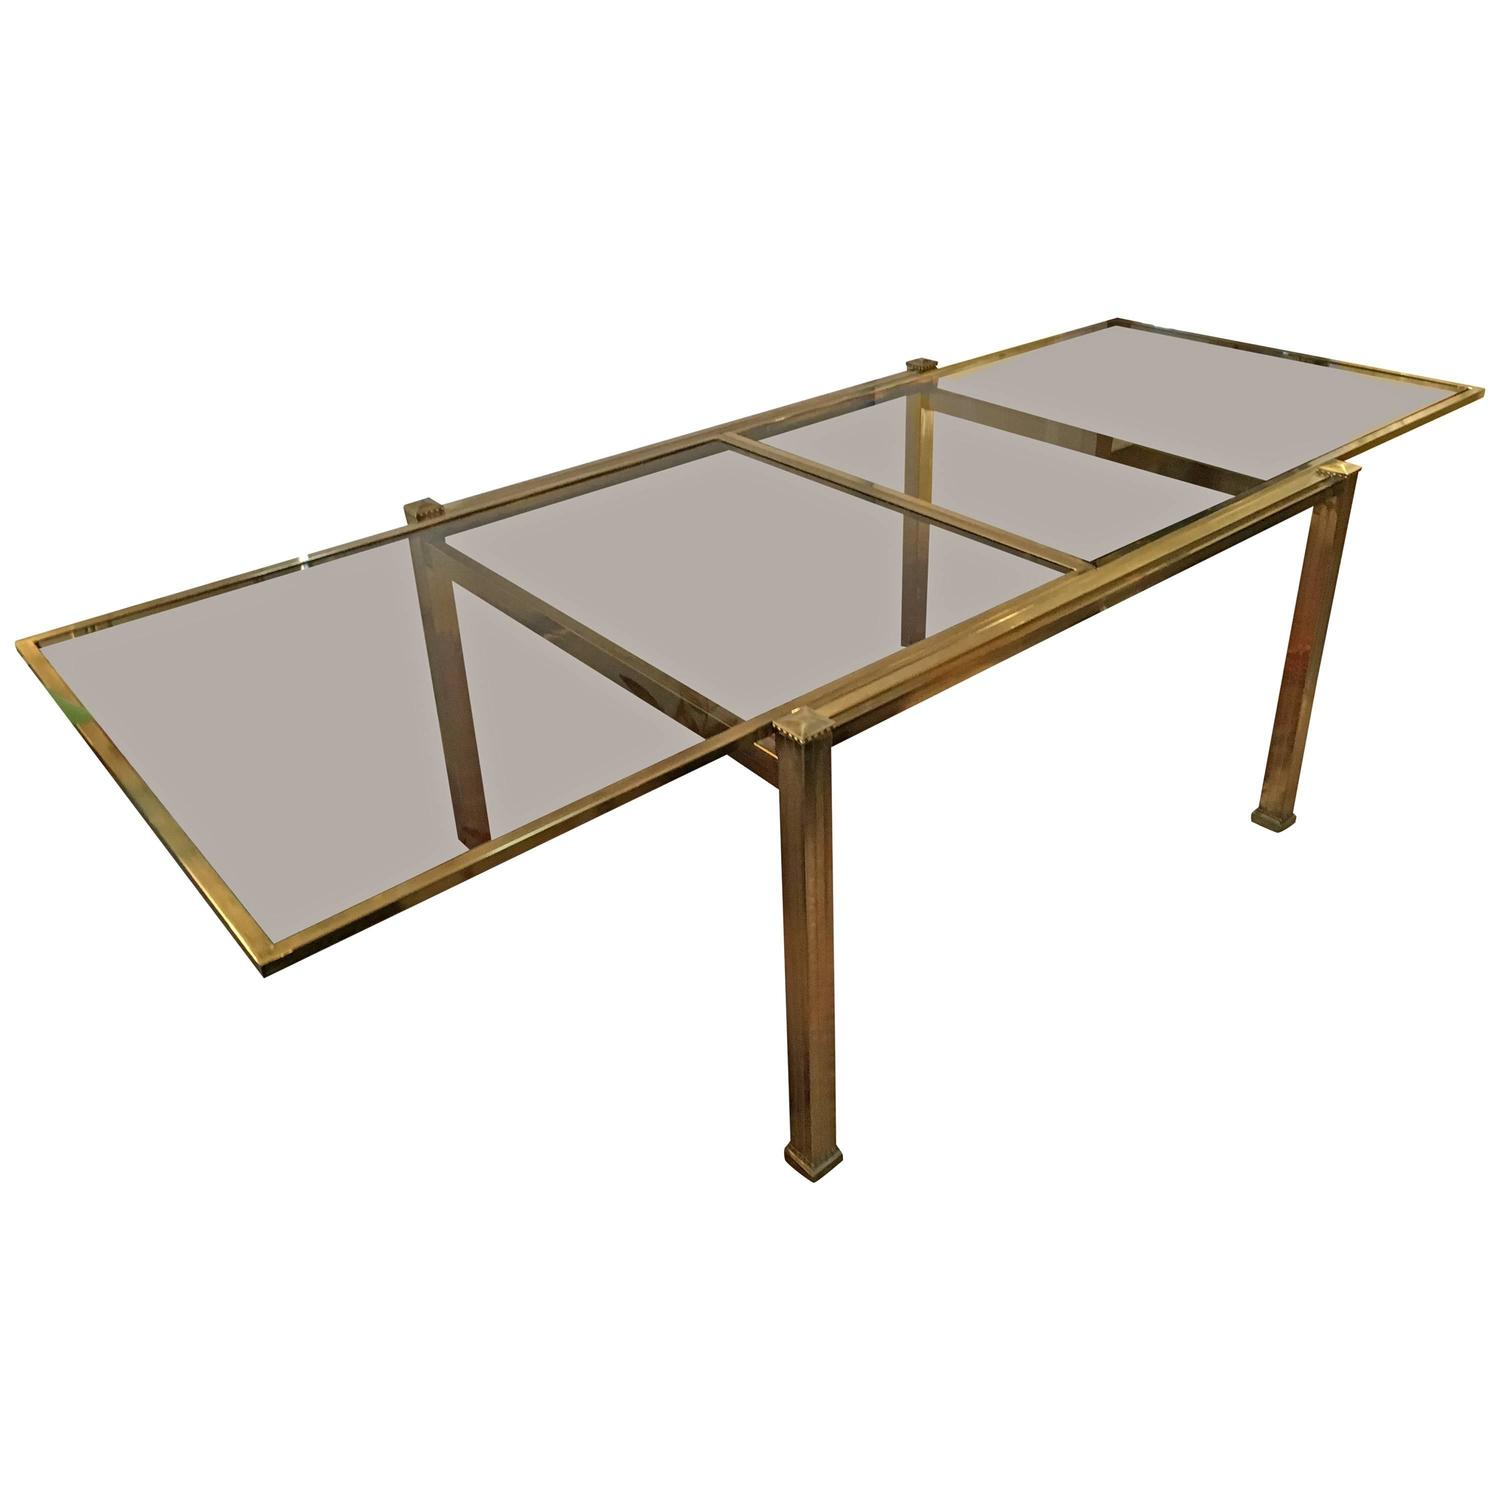 Mastercraft brass and smoked glass extension dining table for Extension dining table